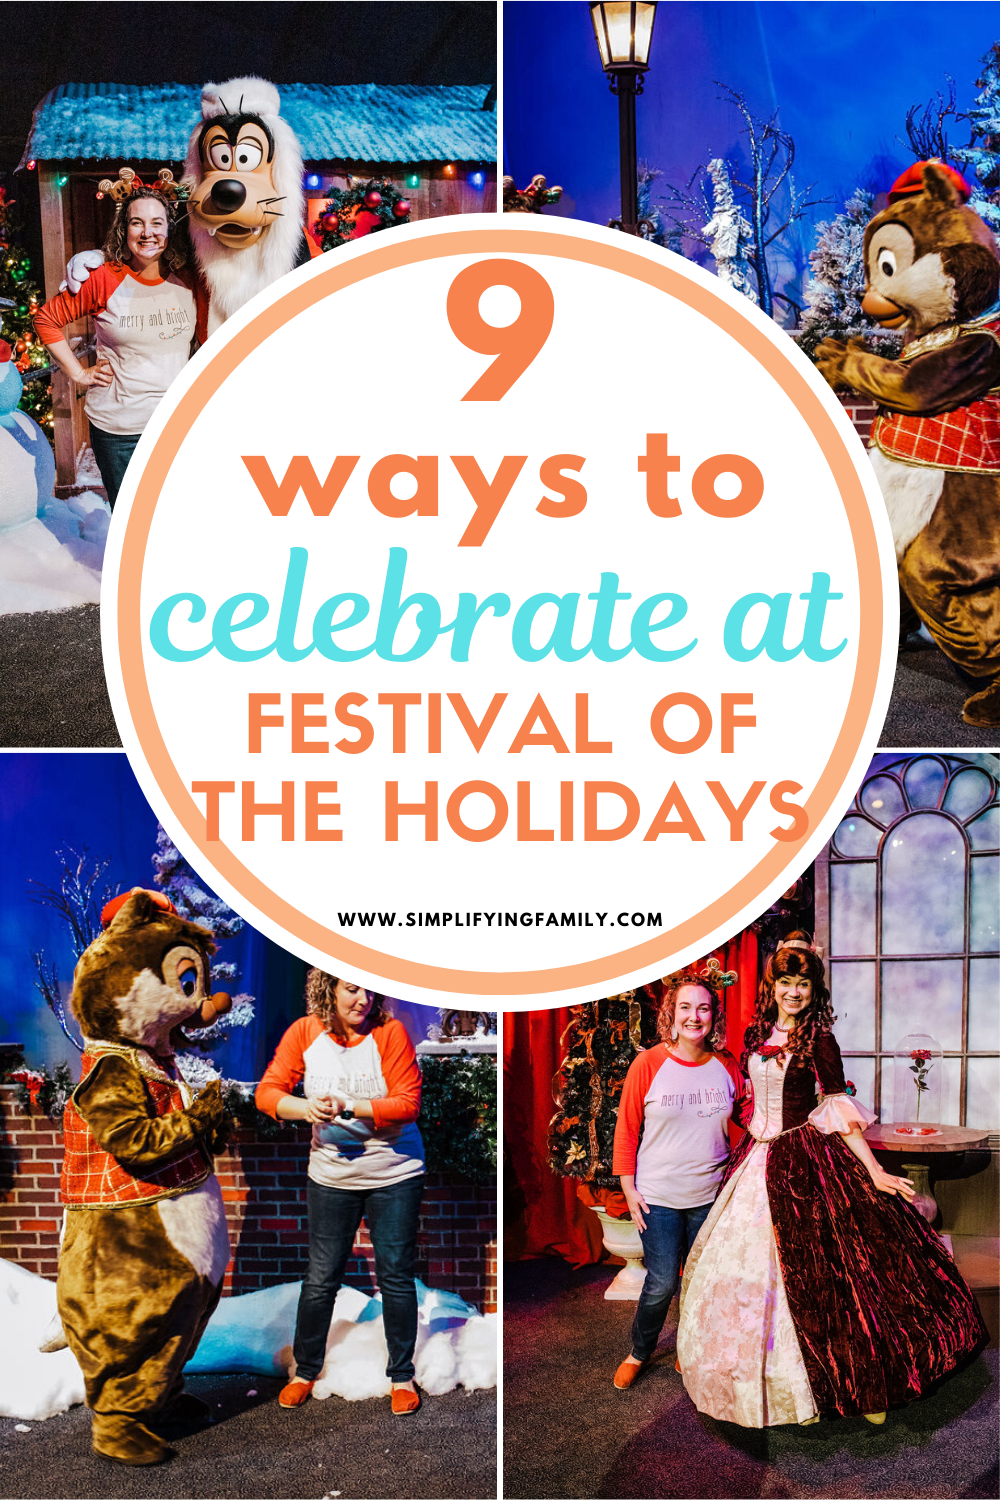 Celebrate at the 2019 Epcot International Festival of the